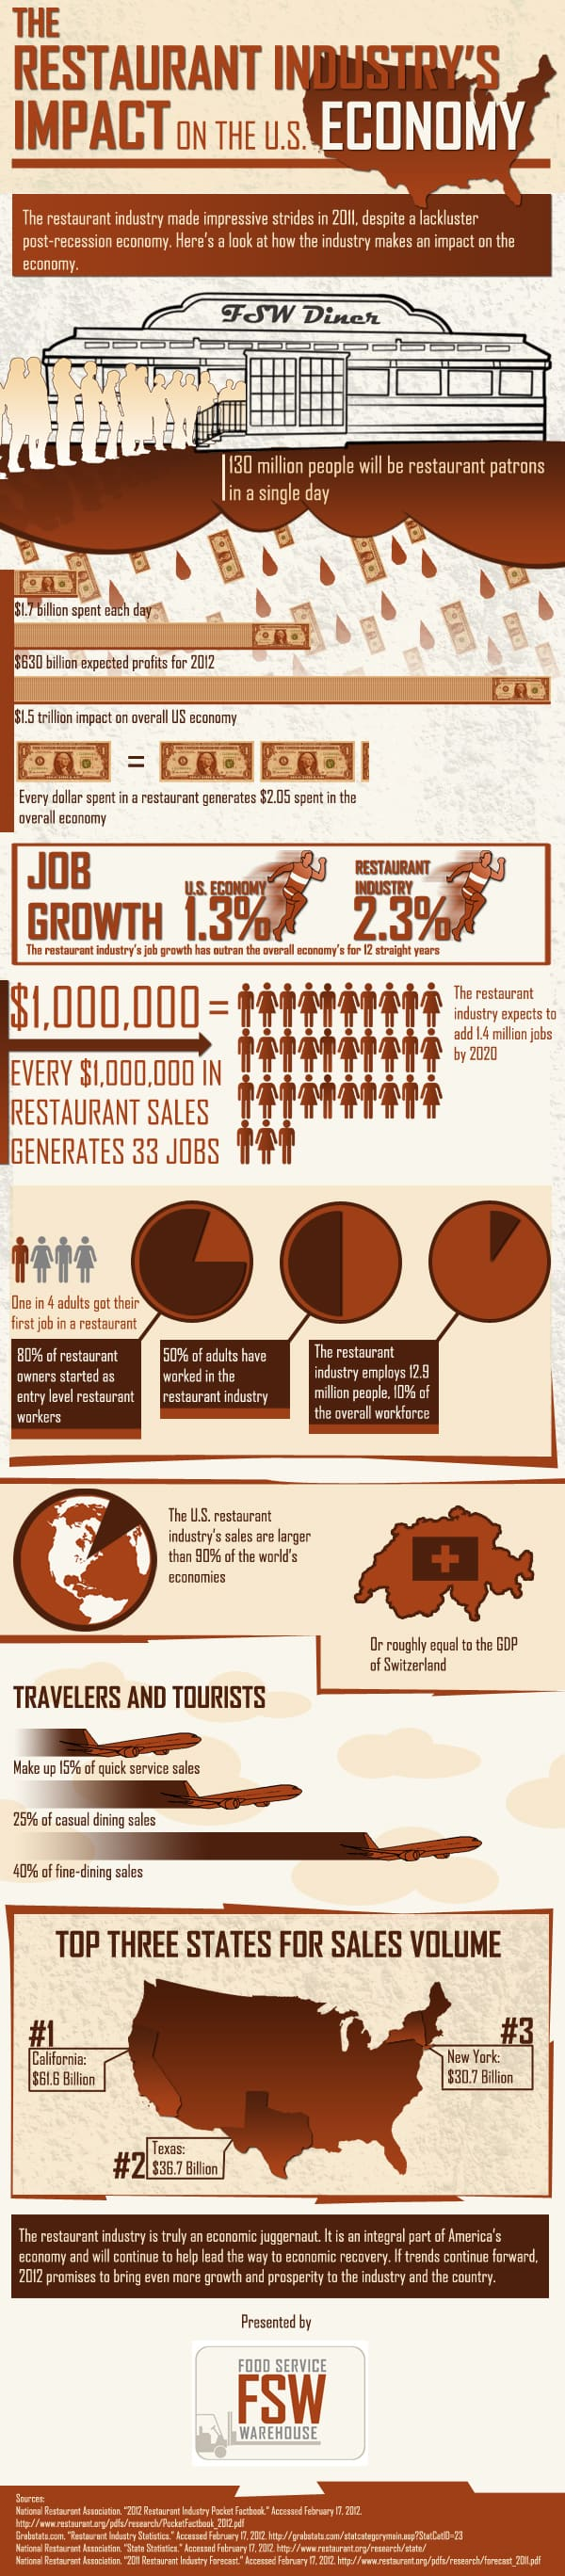 restaurant business and the us economy